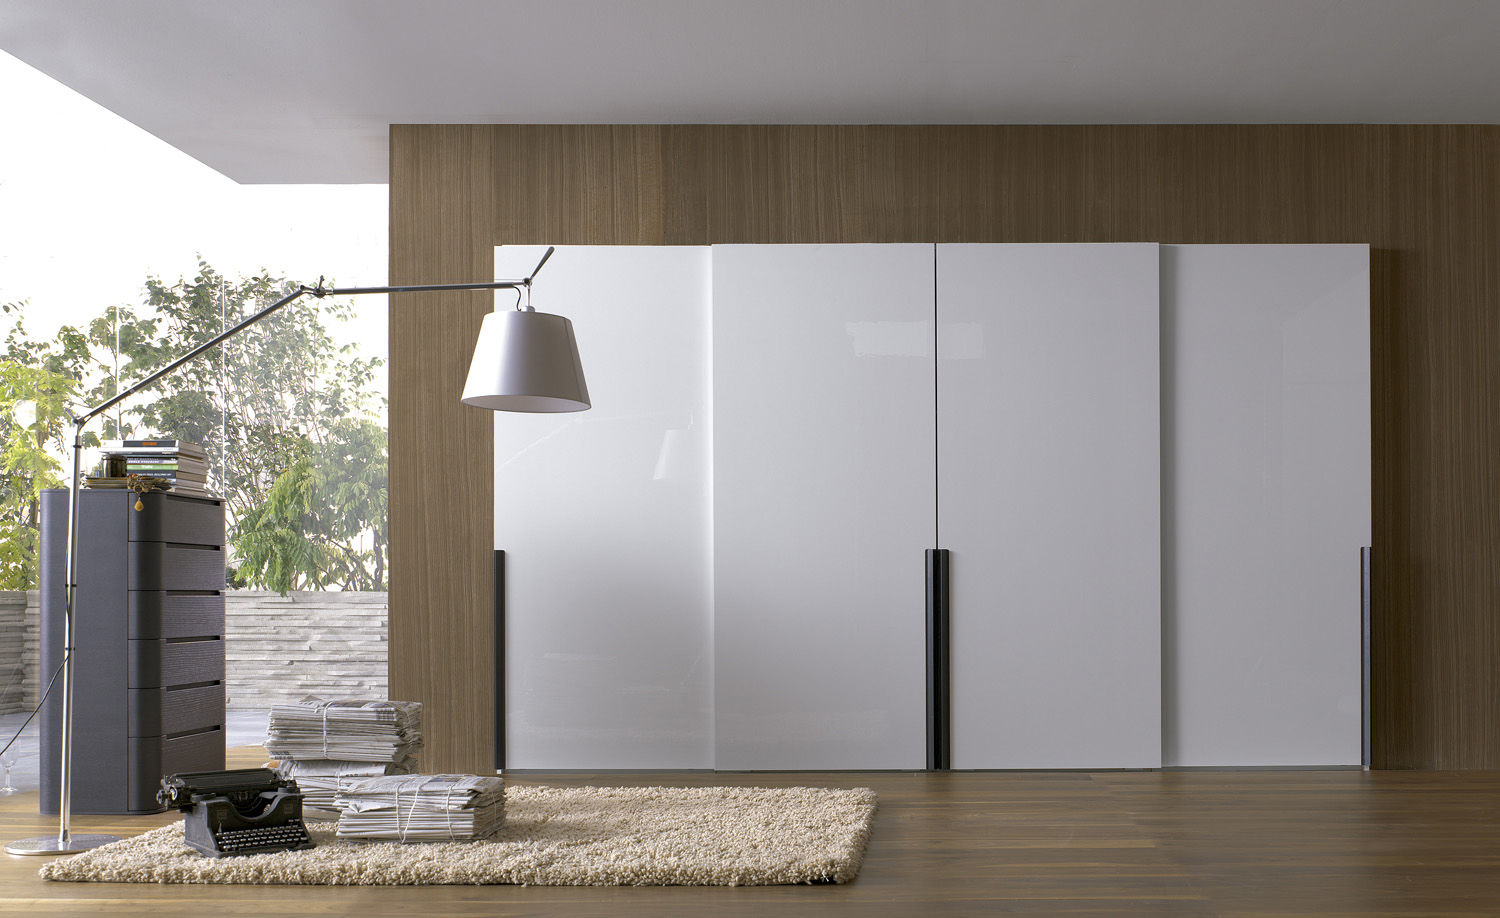 Wood sliding doors -  Contemporary Wardrobe Wooden Lacquered Wood Sliding Door Chic By Fernando Salas And Jordi